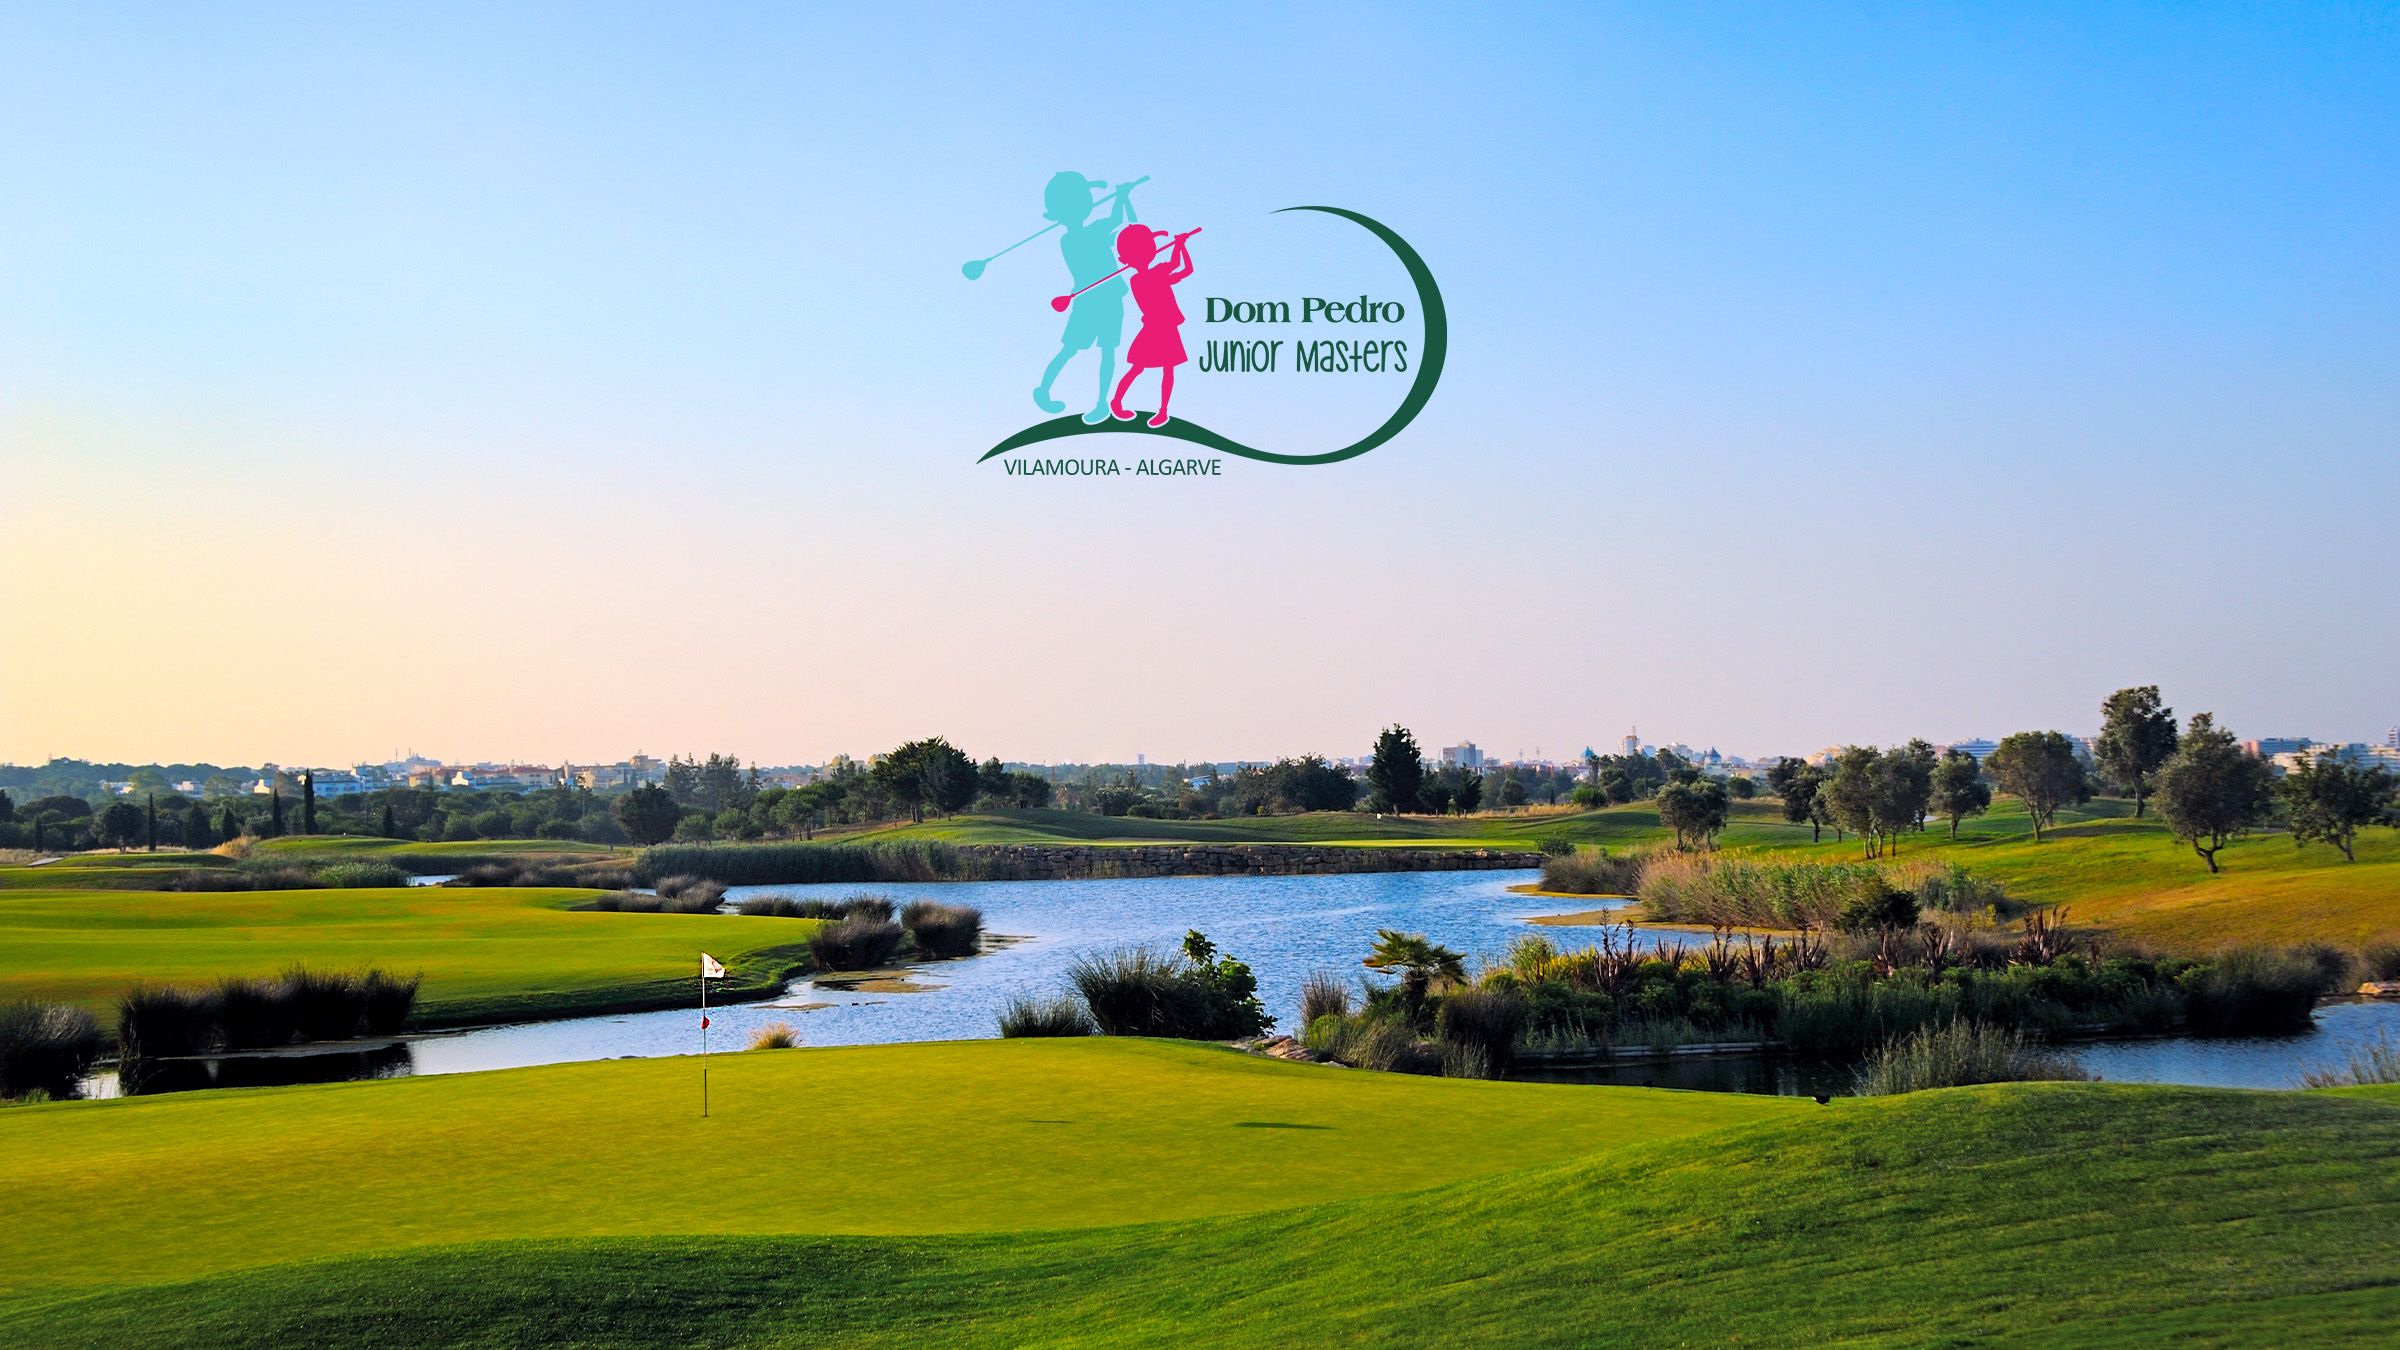 Golf Tournaments in Vilamoura in 2021 - III Dom Pedro Junior Masters